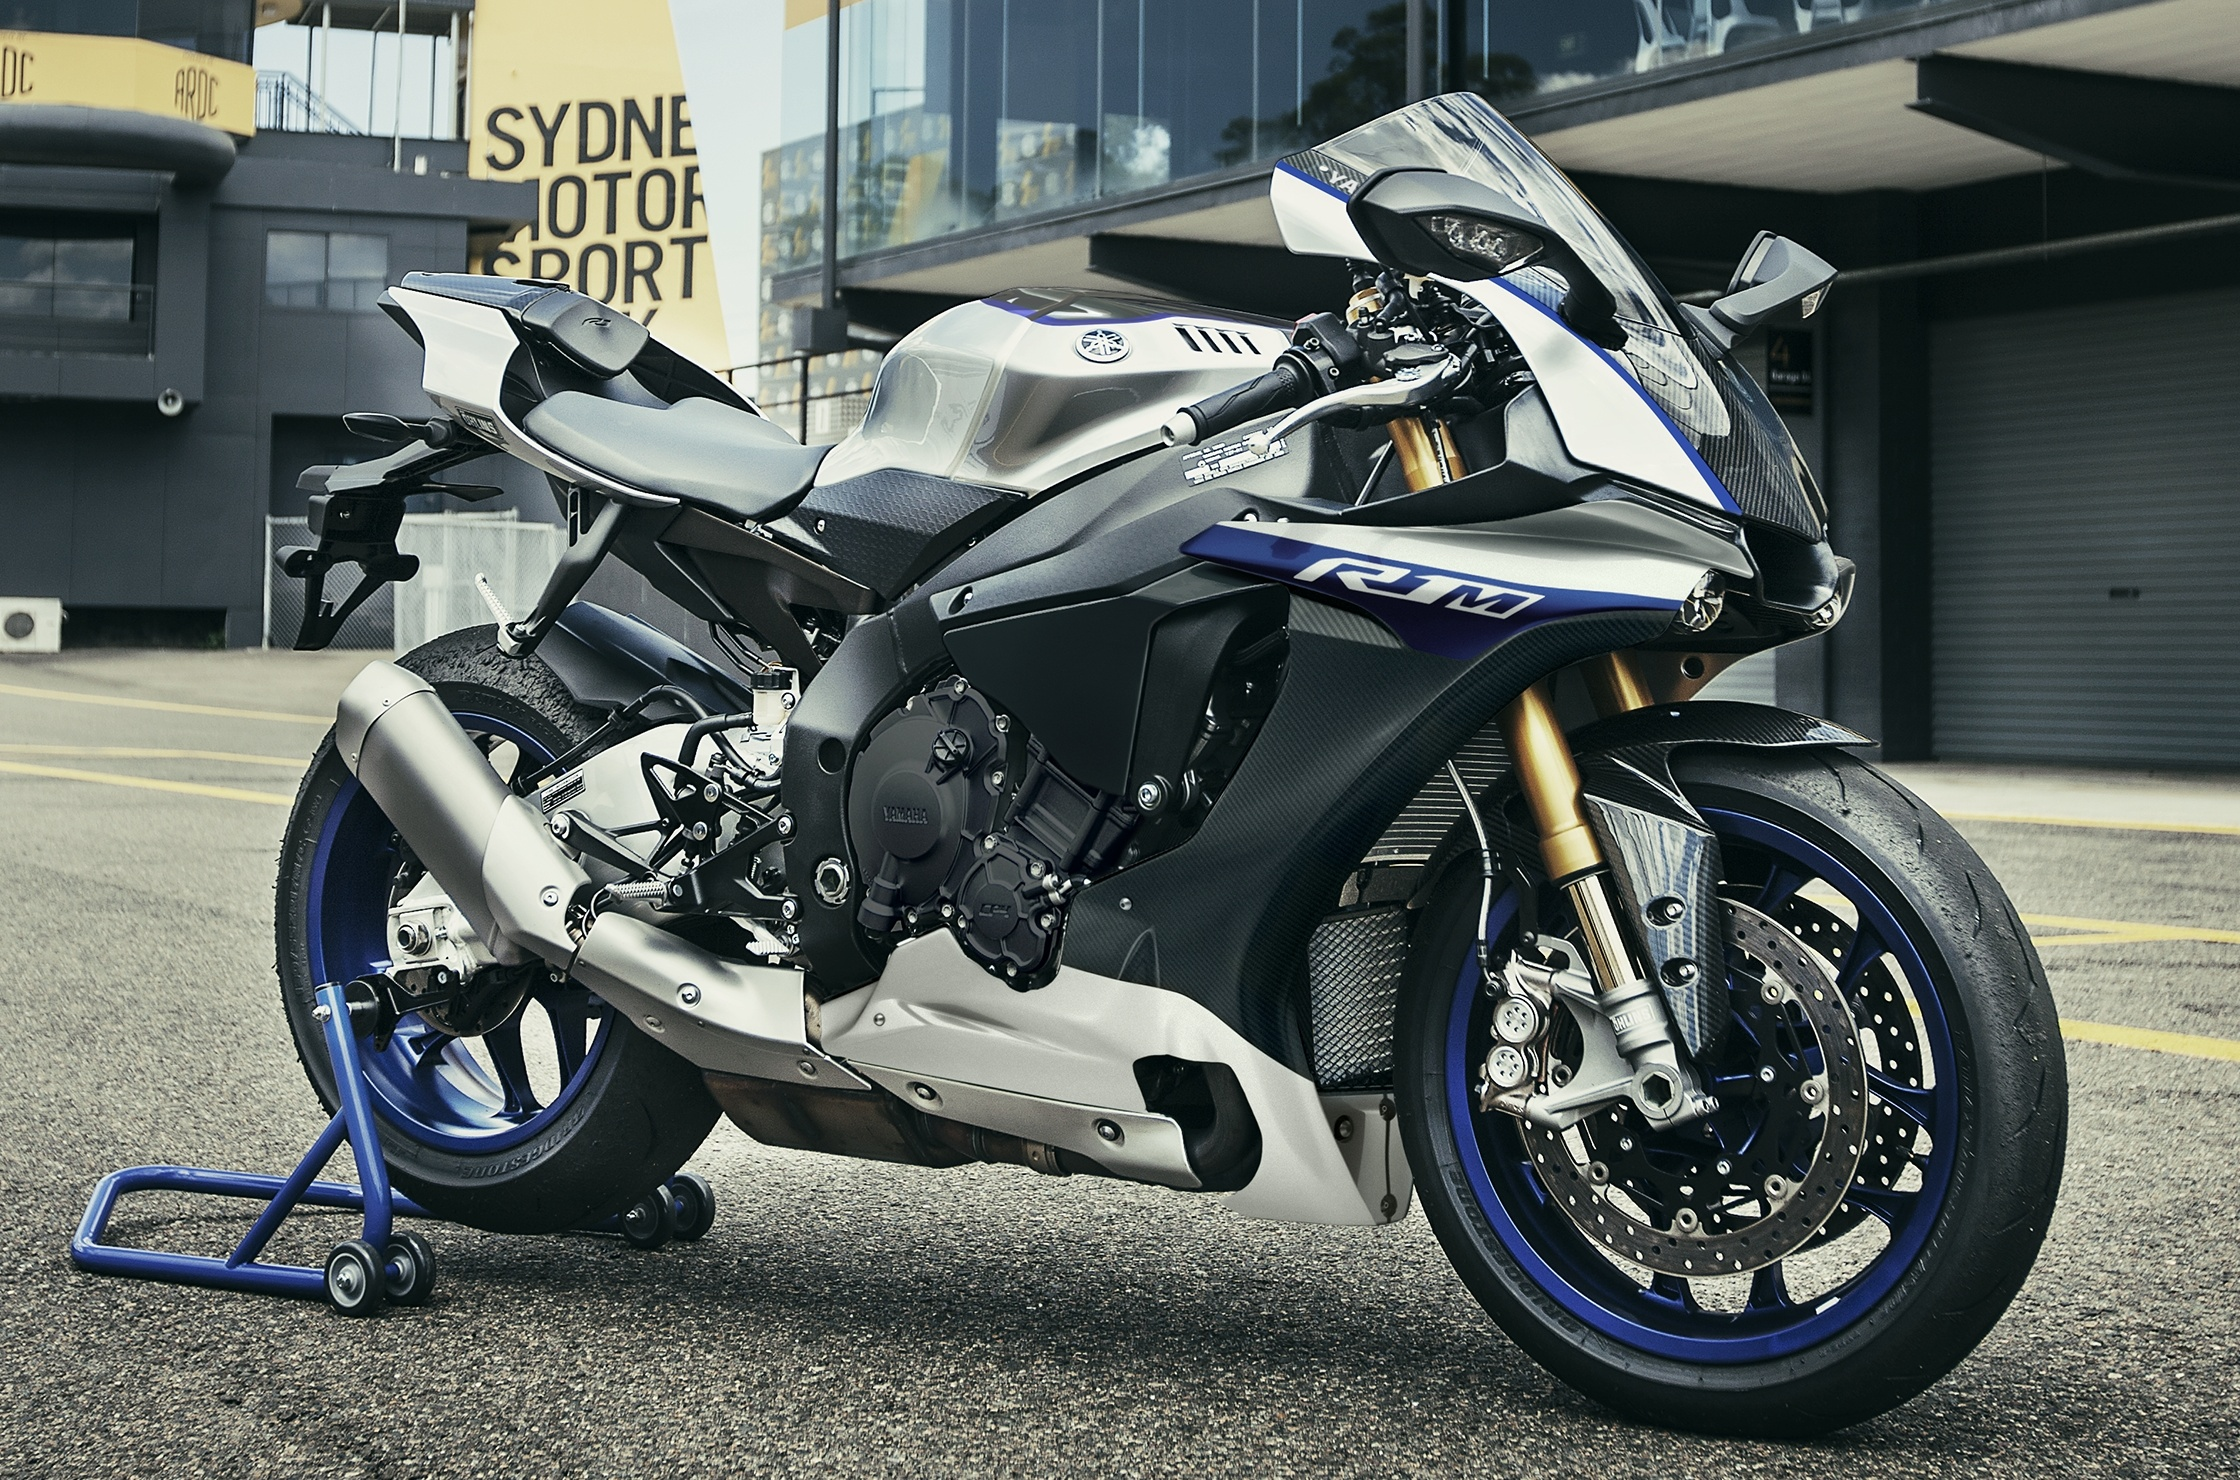 2017 yamaha yzf r1m opens for online order in oct paul tan for Yamaha r1m specs